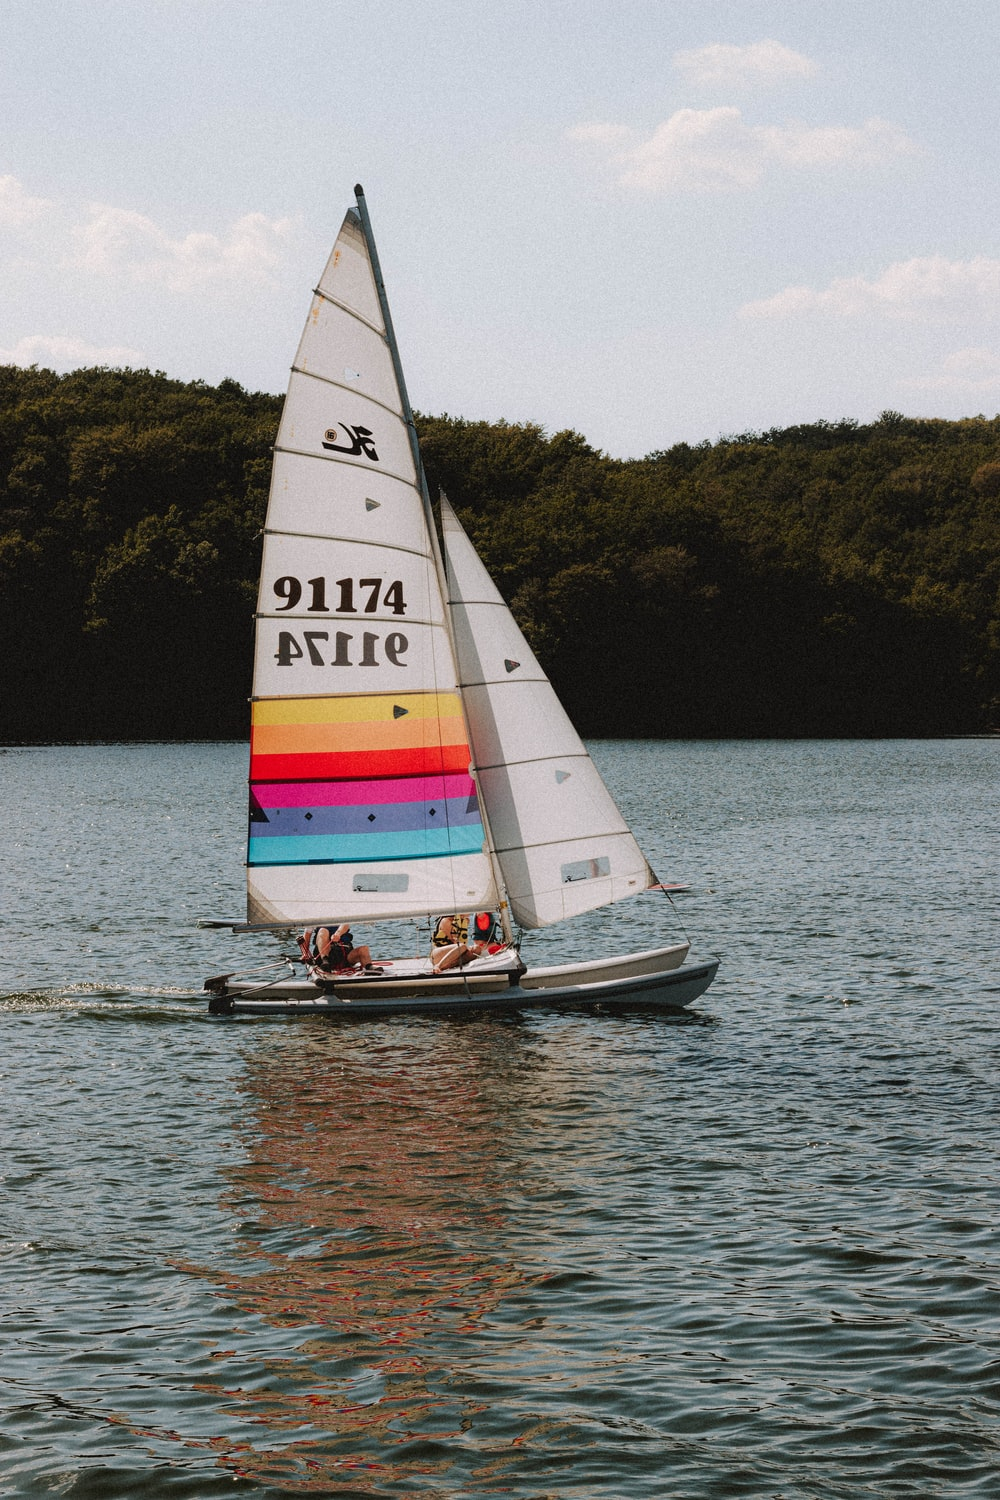 white and red sail boat on body of water during daytime